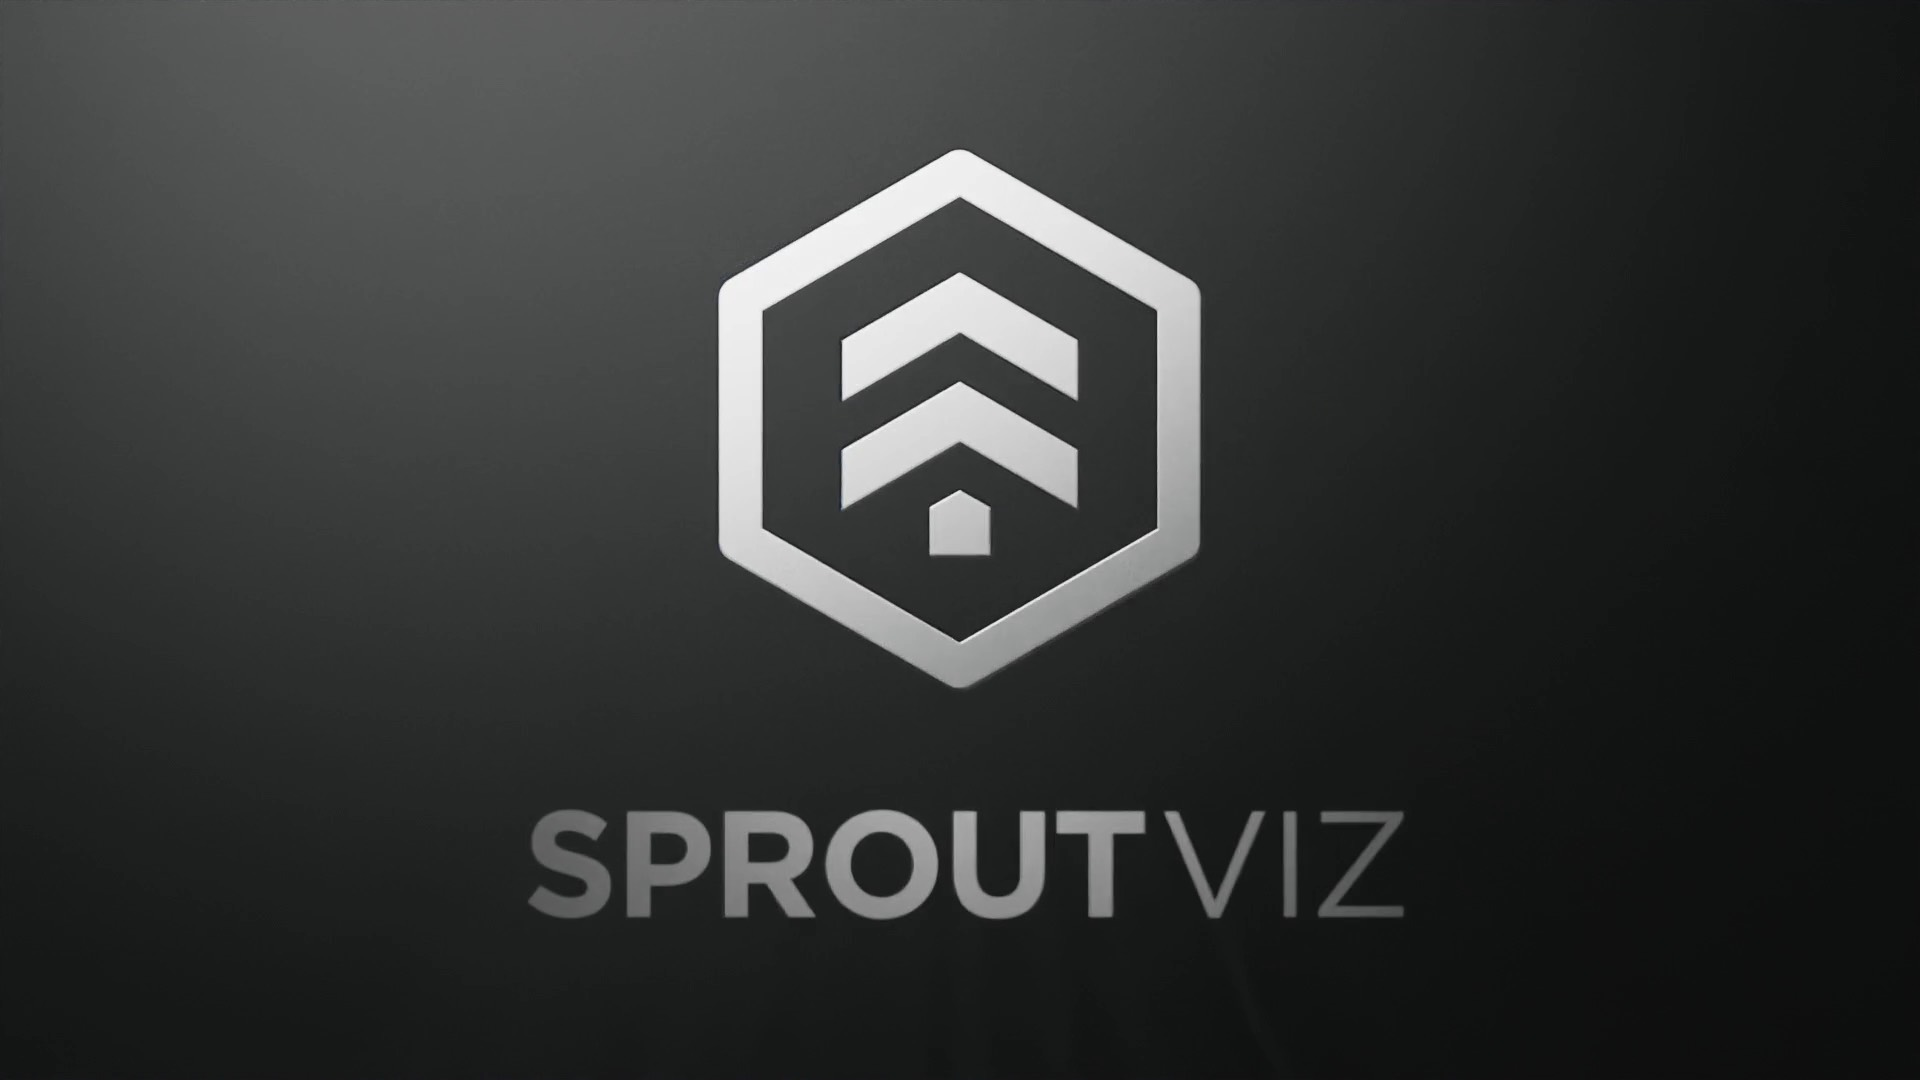 3D CGI Render Gif of the Sprout Viz Logo spinning